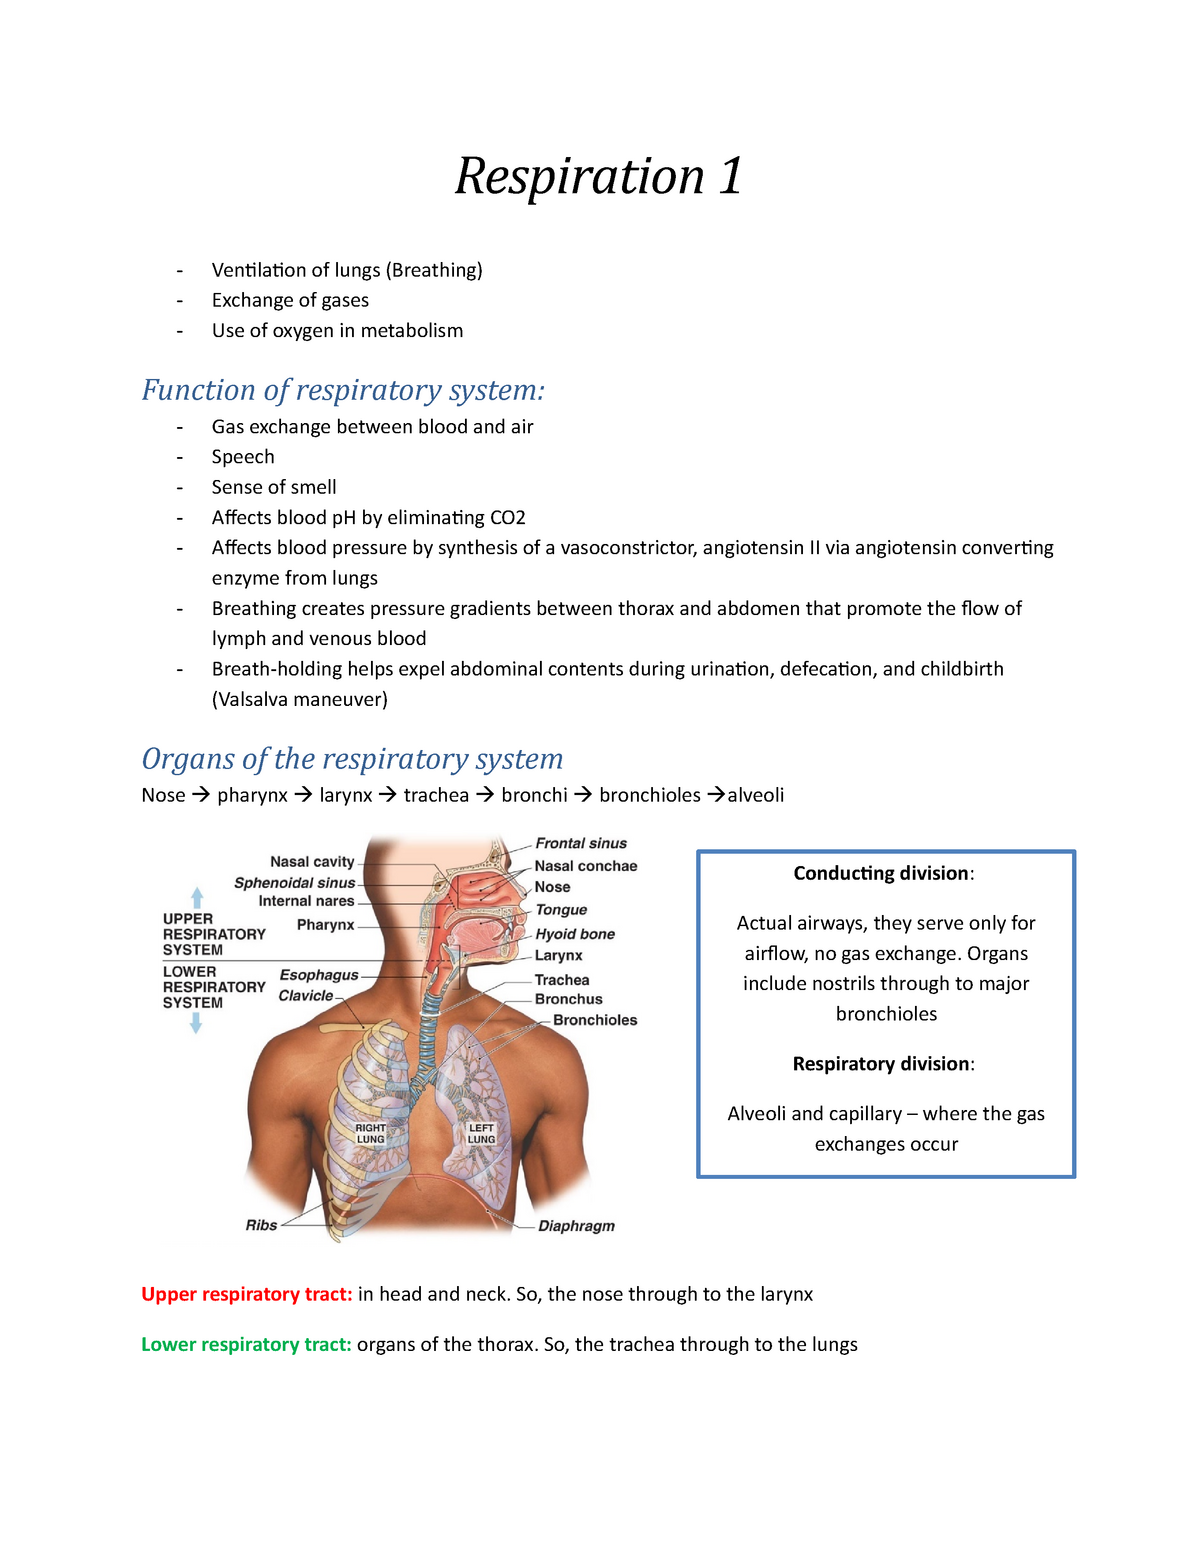 Human Anatomy and Physiology Lecture Notes - Respiration - 091400